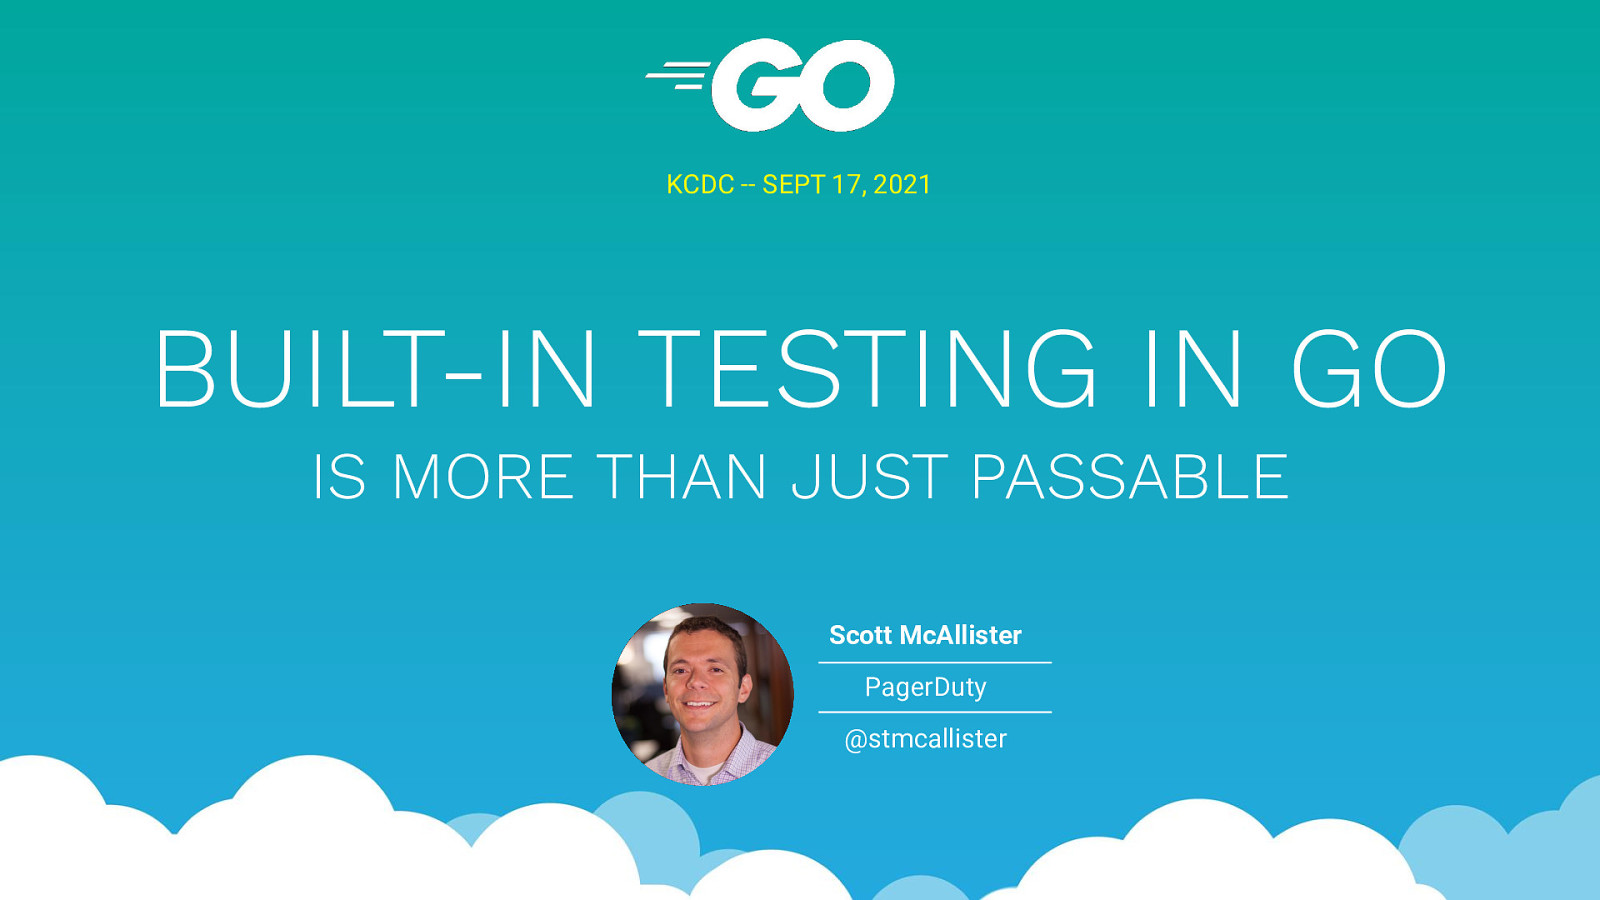 Built-in Testing in Go Is More Than Just Passable